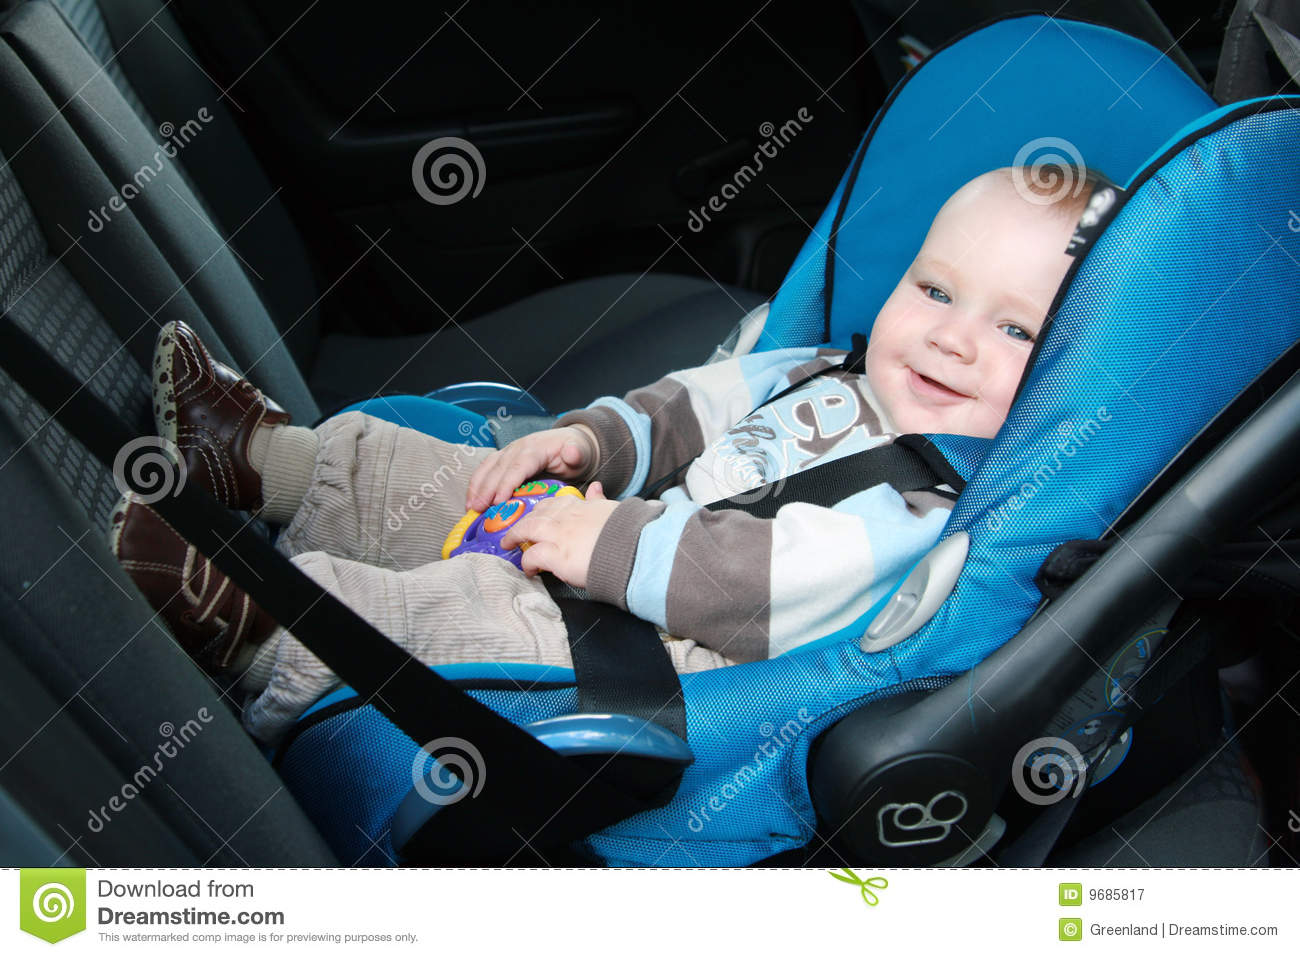 baby in car seat stock image image of infant people 9685817. Black Bedroom Furniture Sets. Home Design Ideas